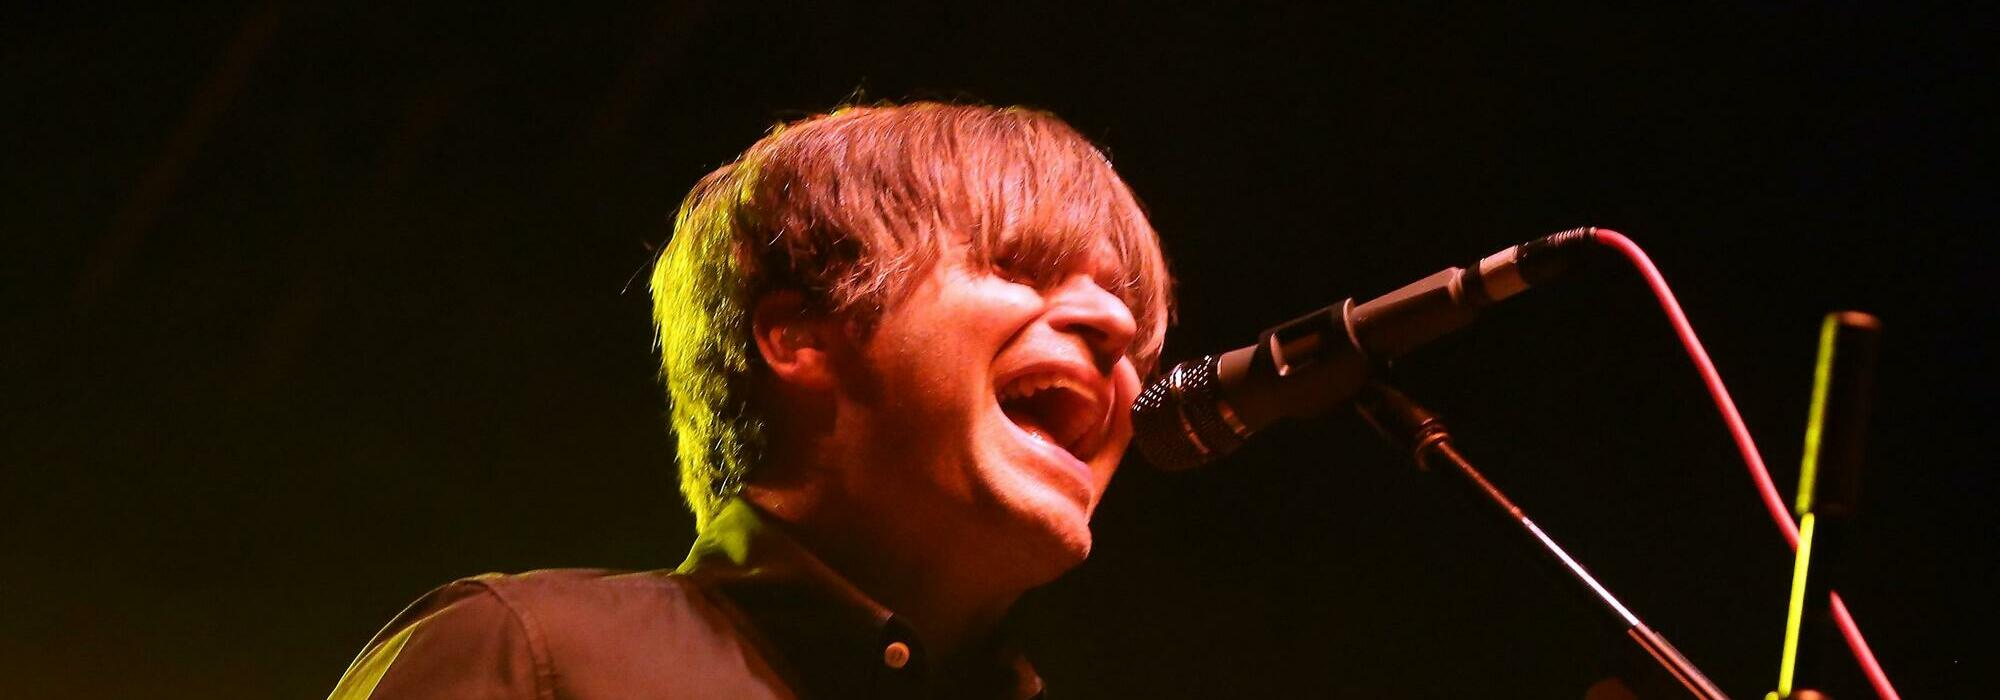 A Death Cab for Cutie live event